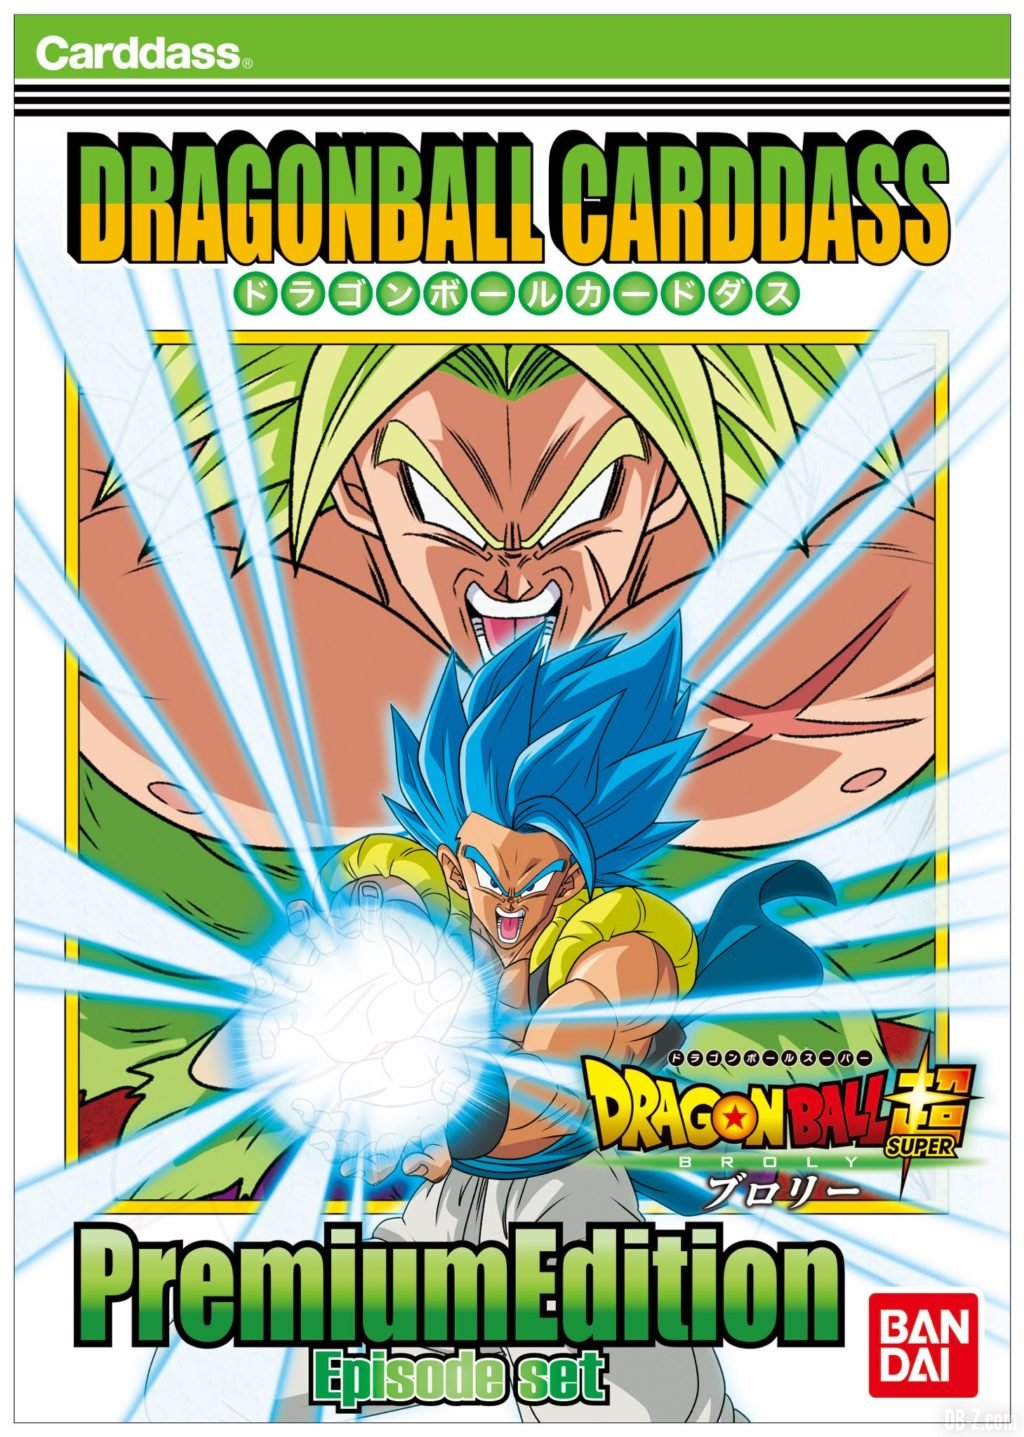 Dragon Ball Carddass Premium Edition Episode Set